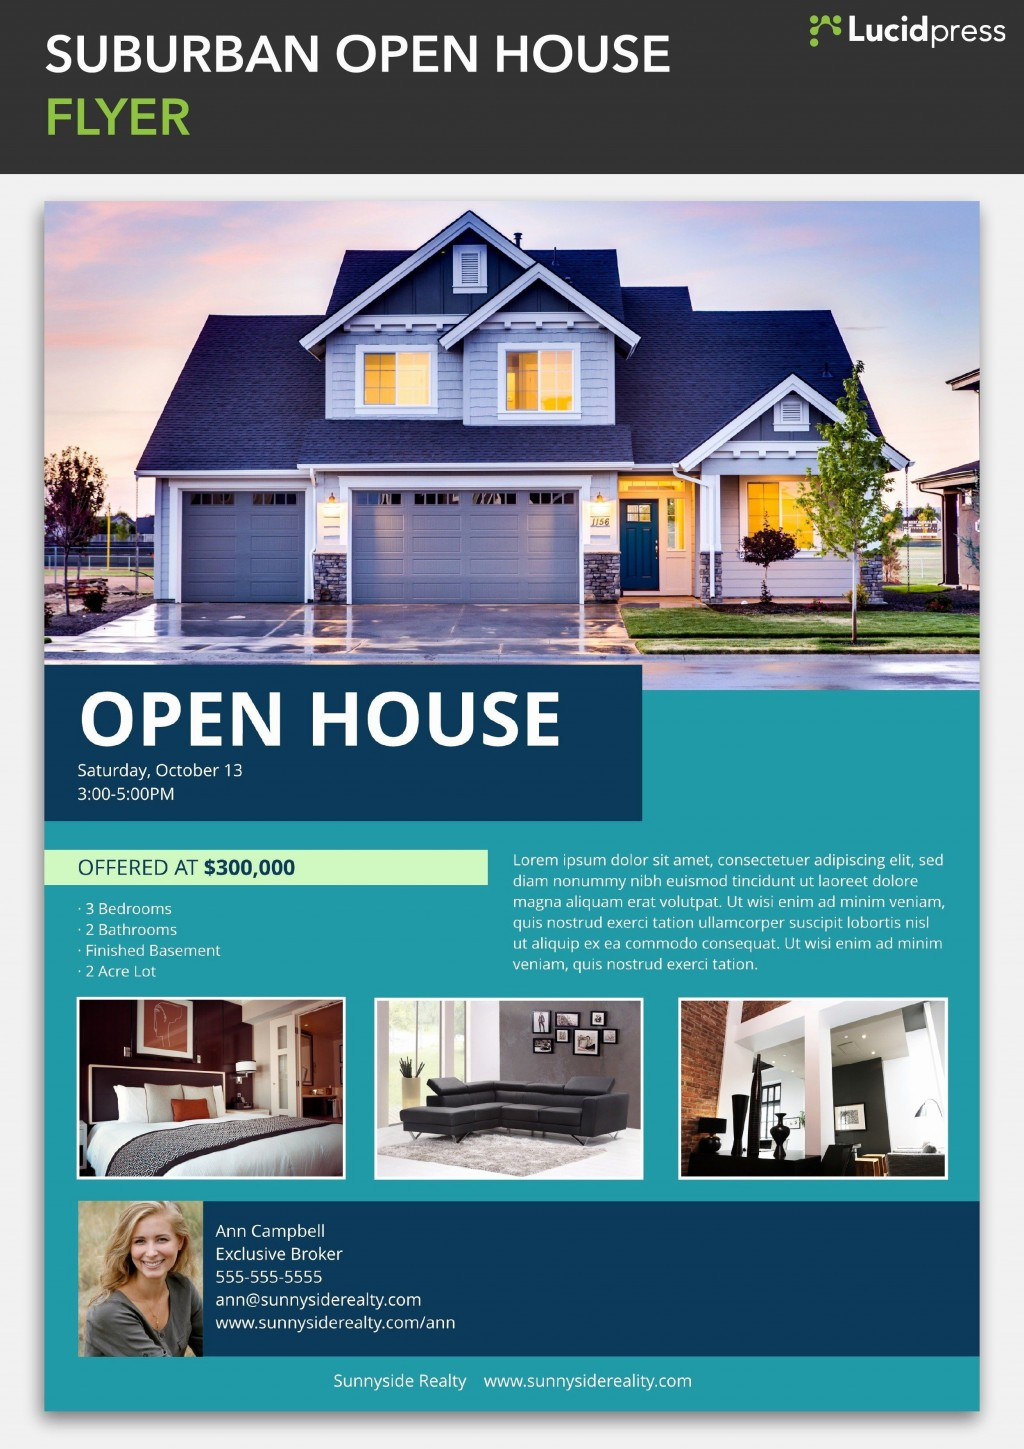 001 Awful Open House Flyer Template Highest Quality  Templates Free School MicrosoftLarge